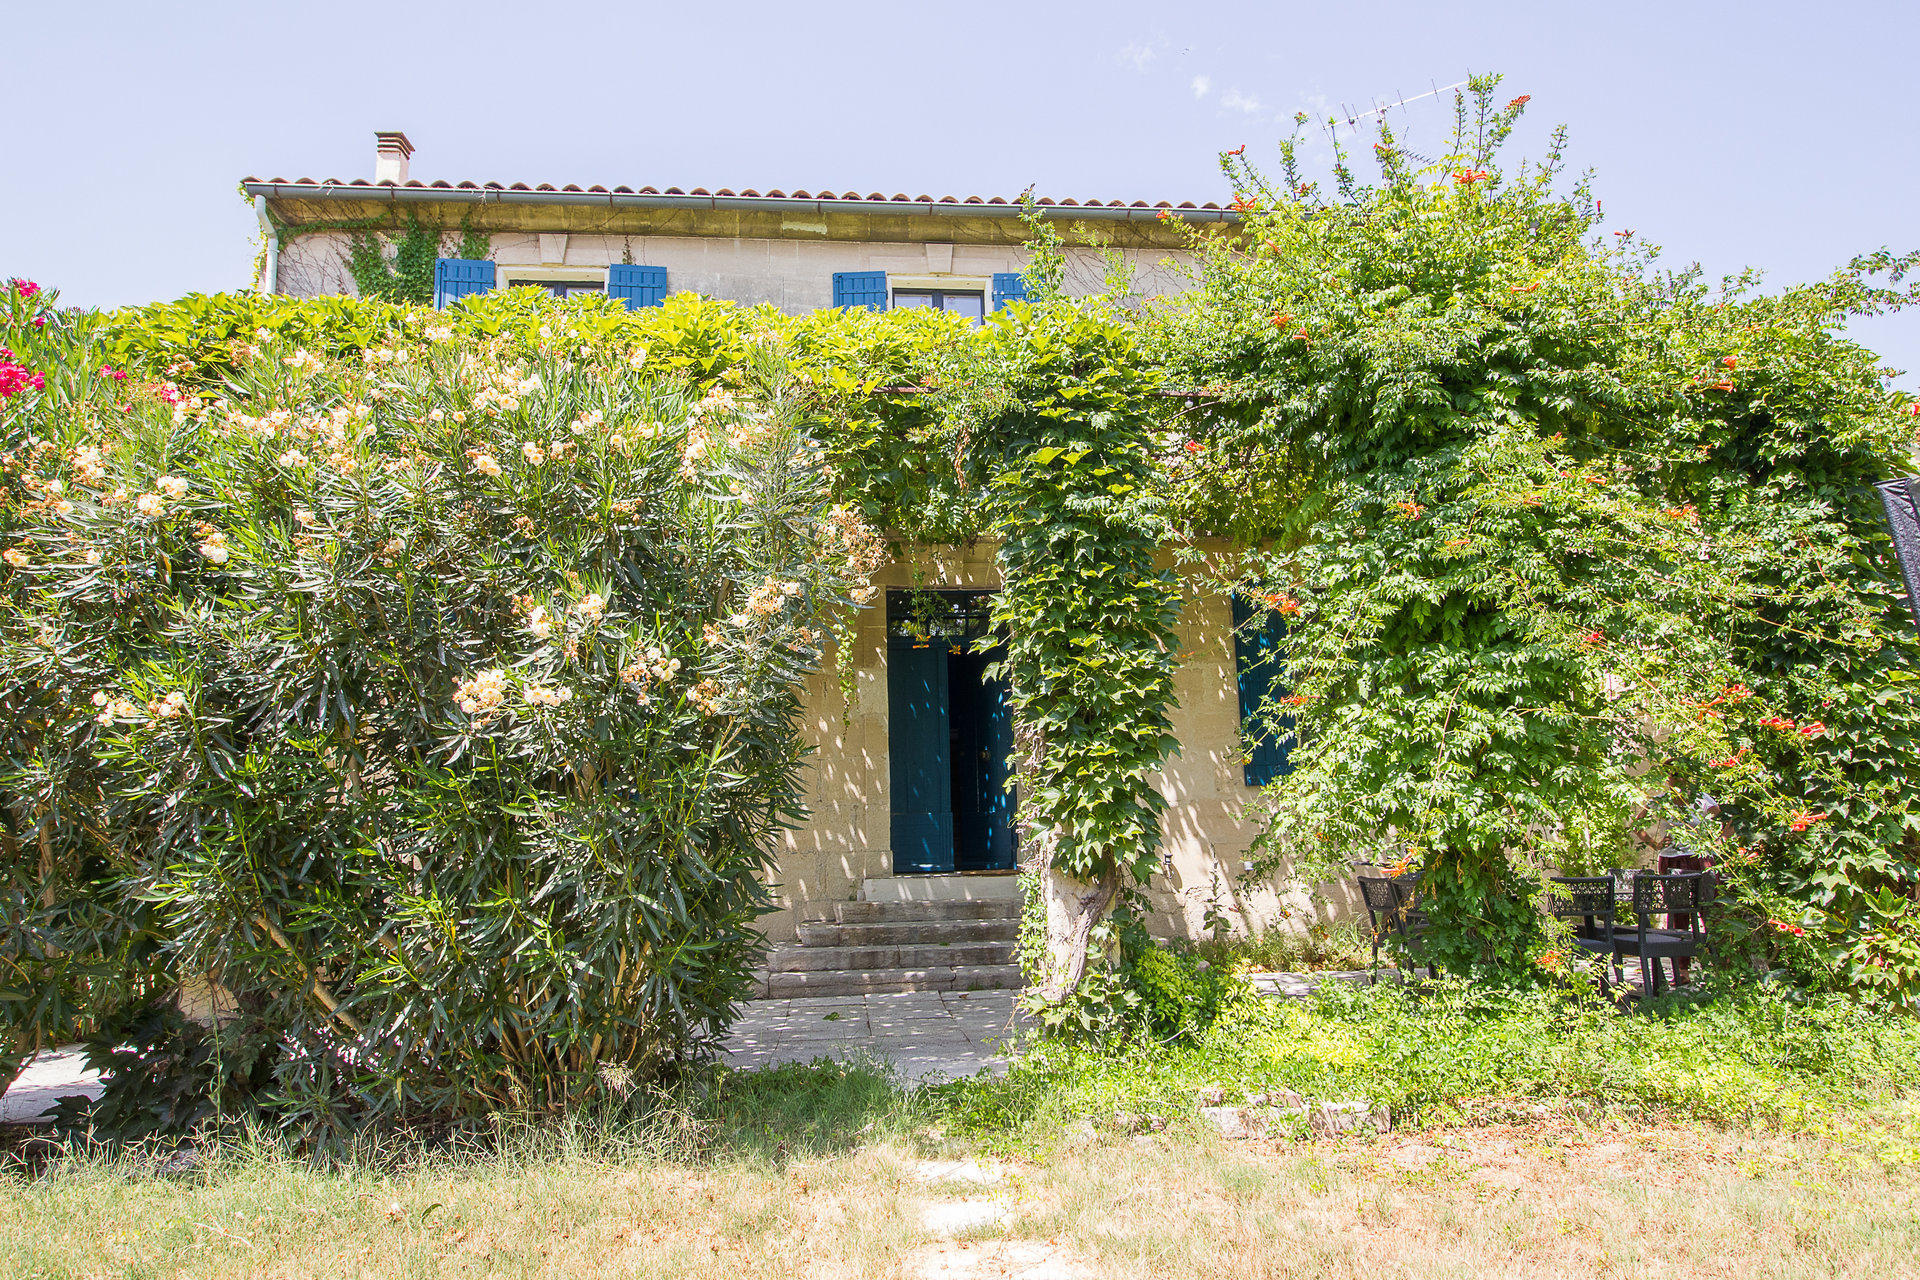 CHARMING MAS NEAR TARASCON IN EXCELLENT CONDITION